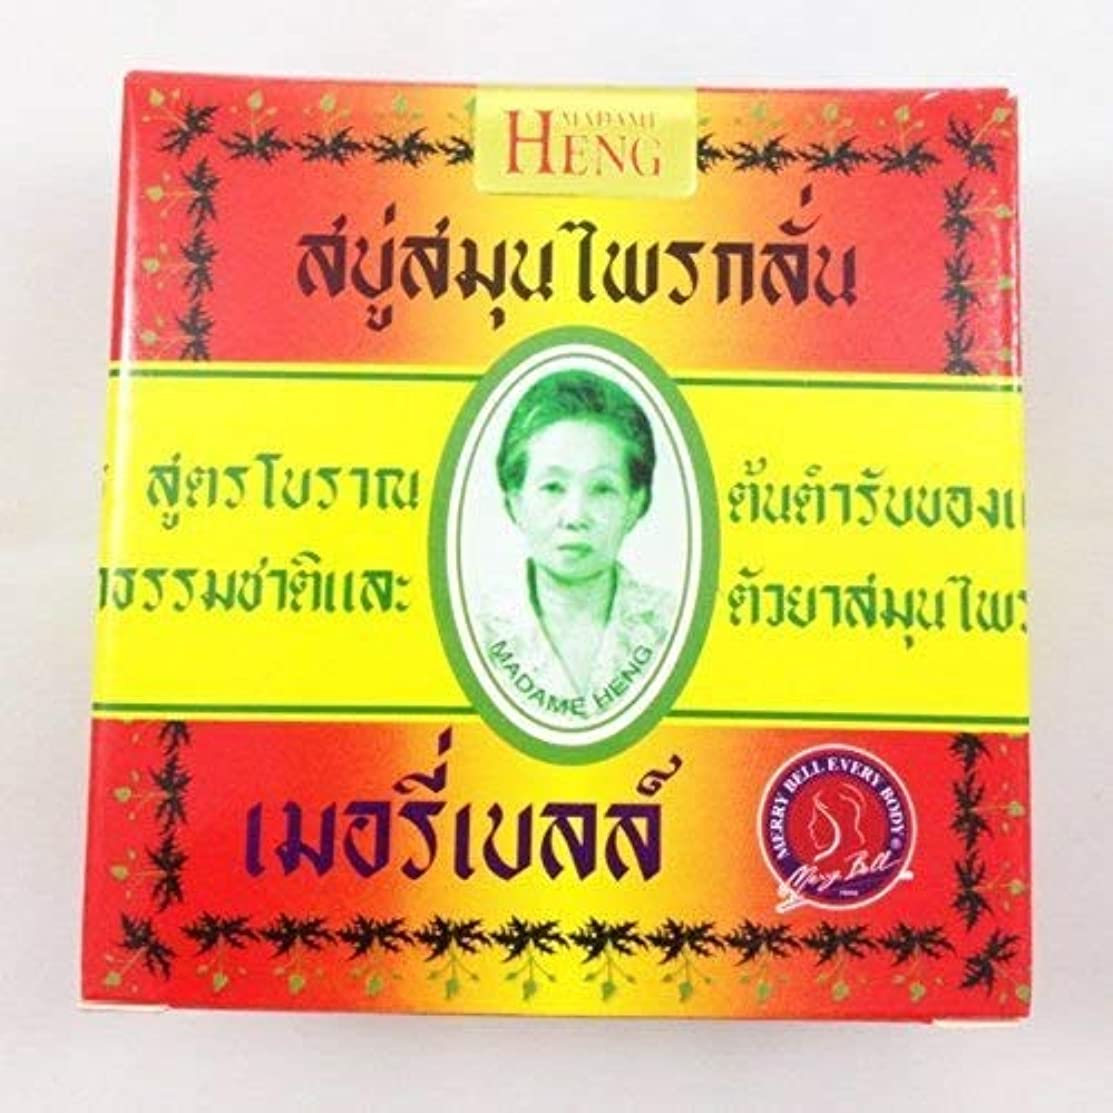 時折延ばす学士Madame Heng Thai Original Natural Herbal Soap Bar Made in Thailand 160gx2pcs by Ni Yom Thai shop